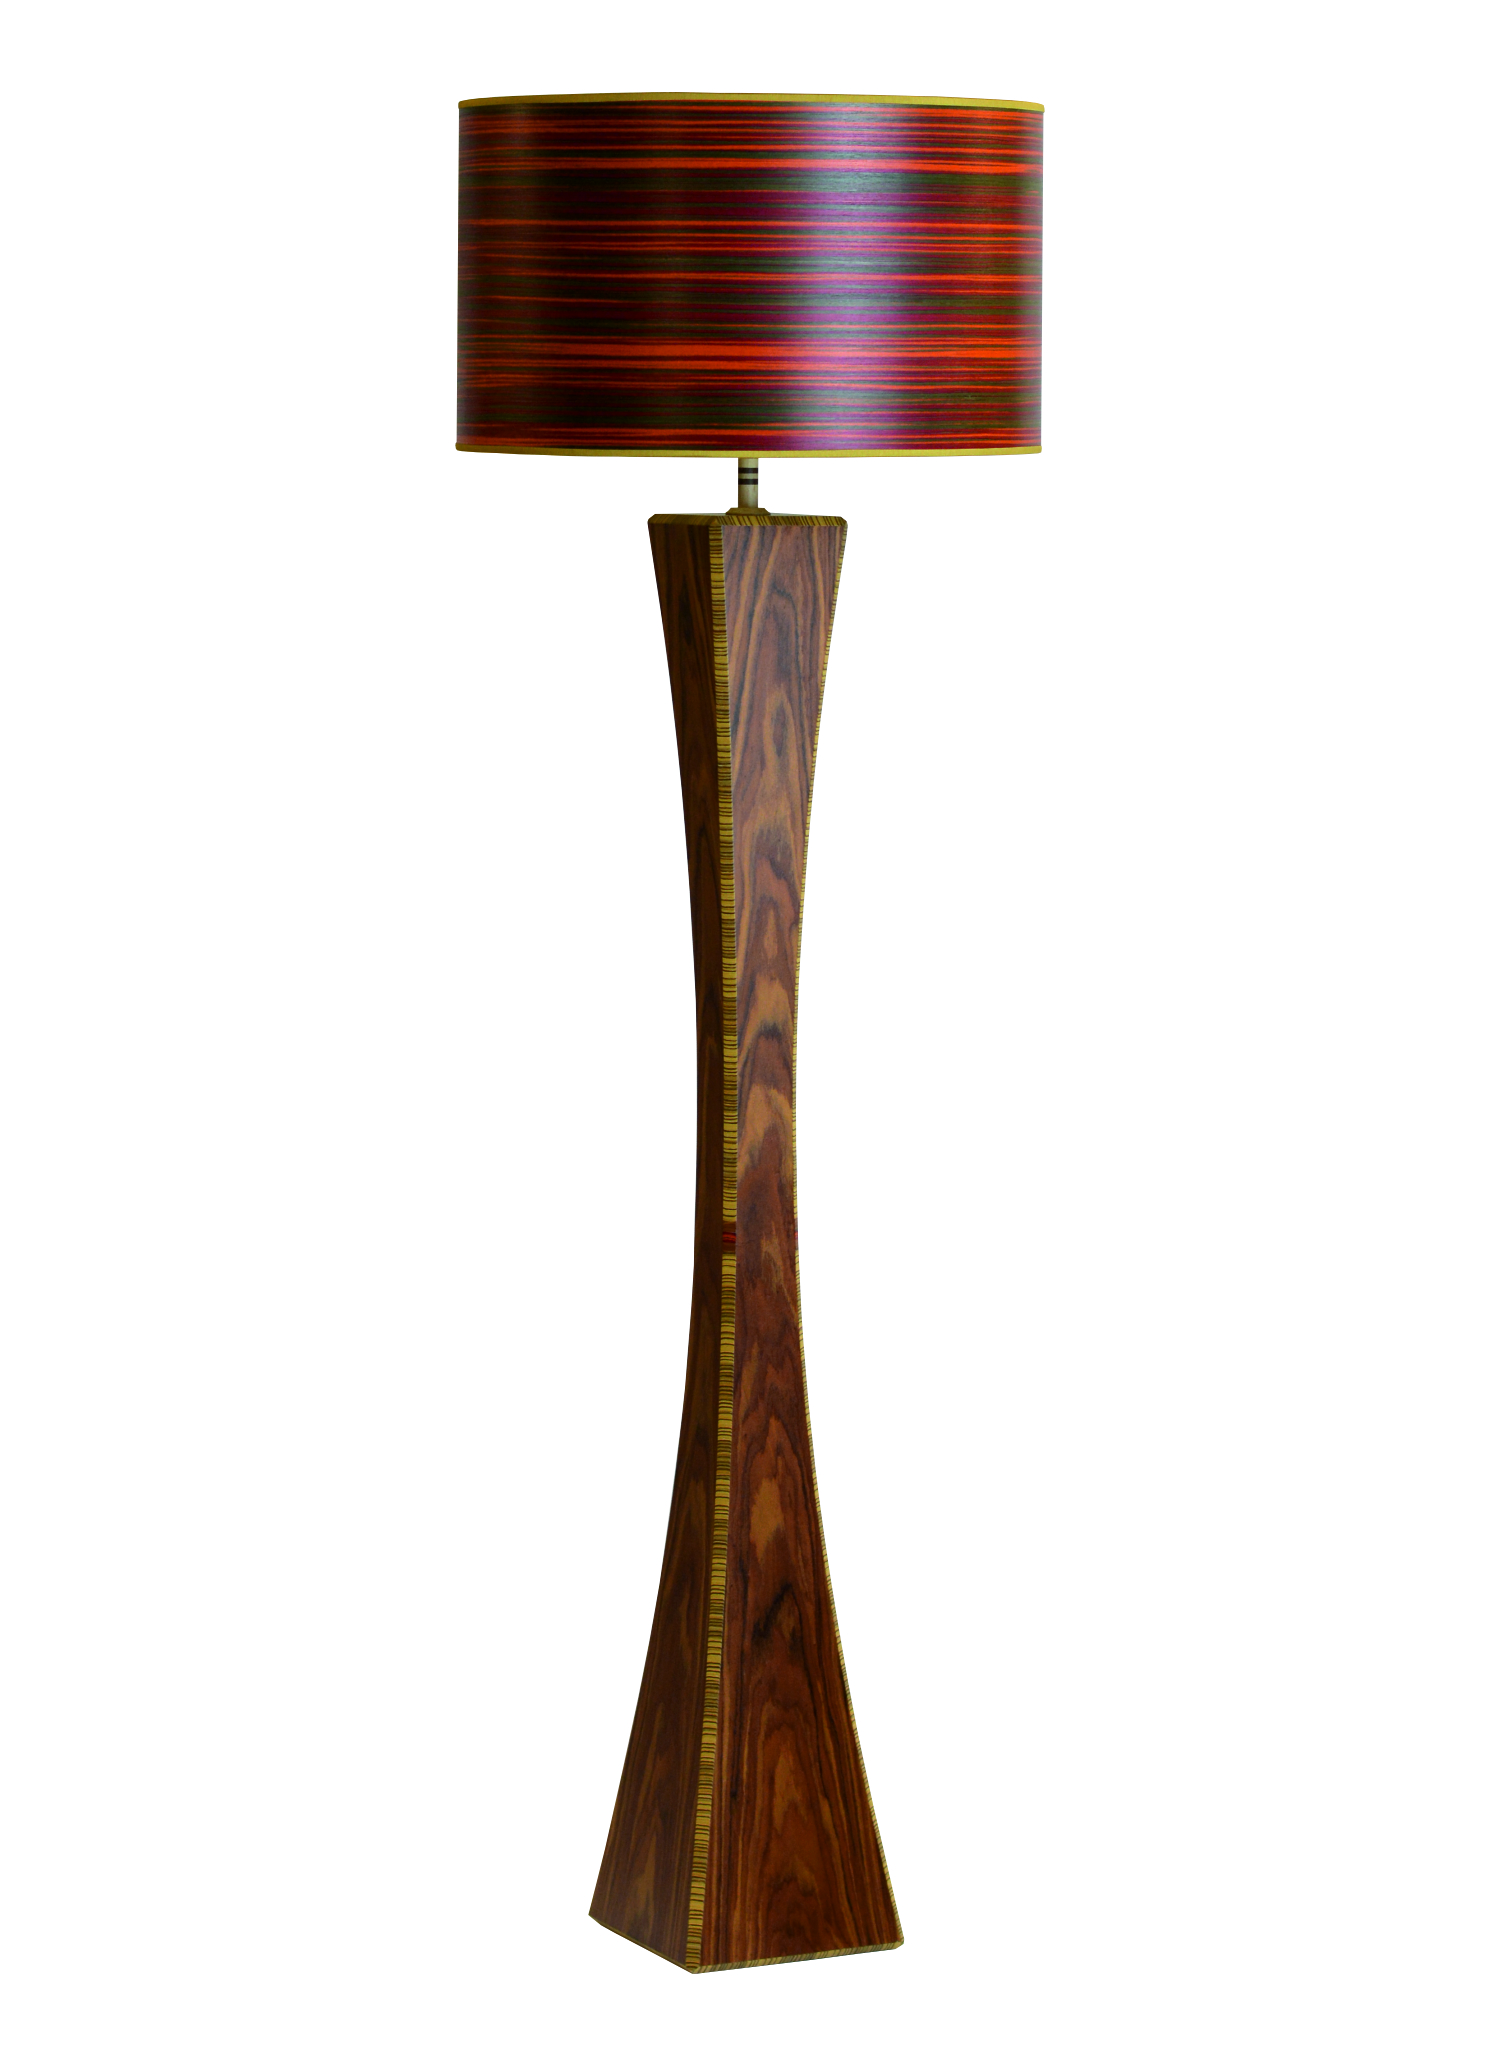 Artisan Tall Lamp by Storm Furniture